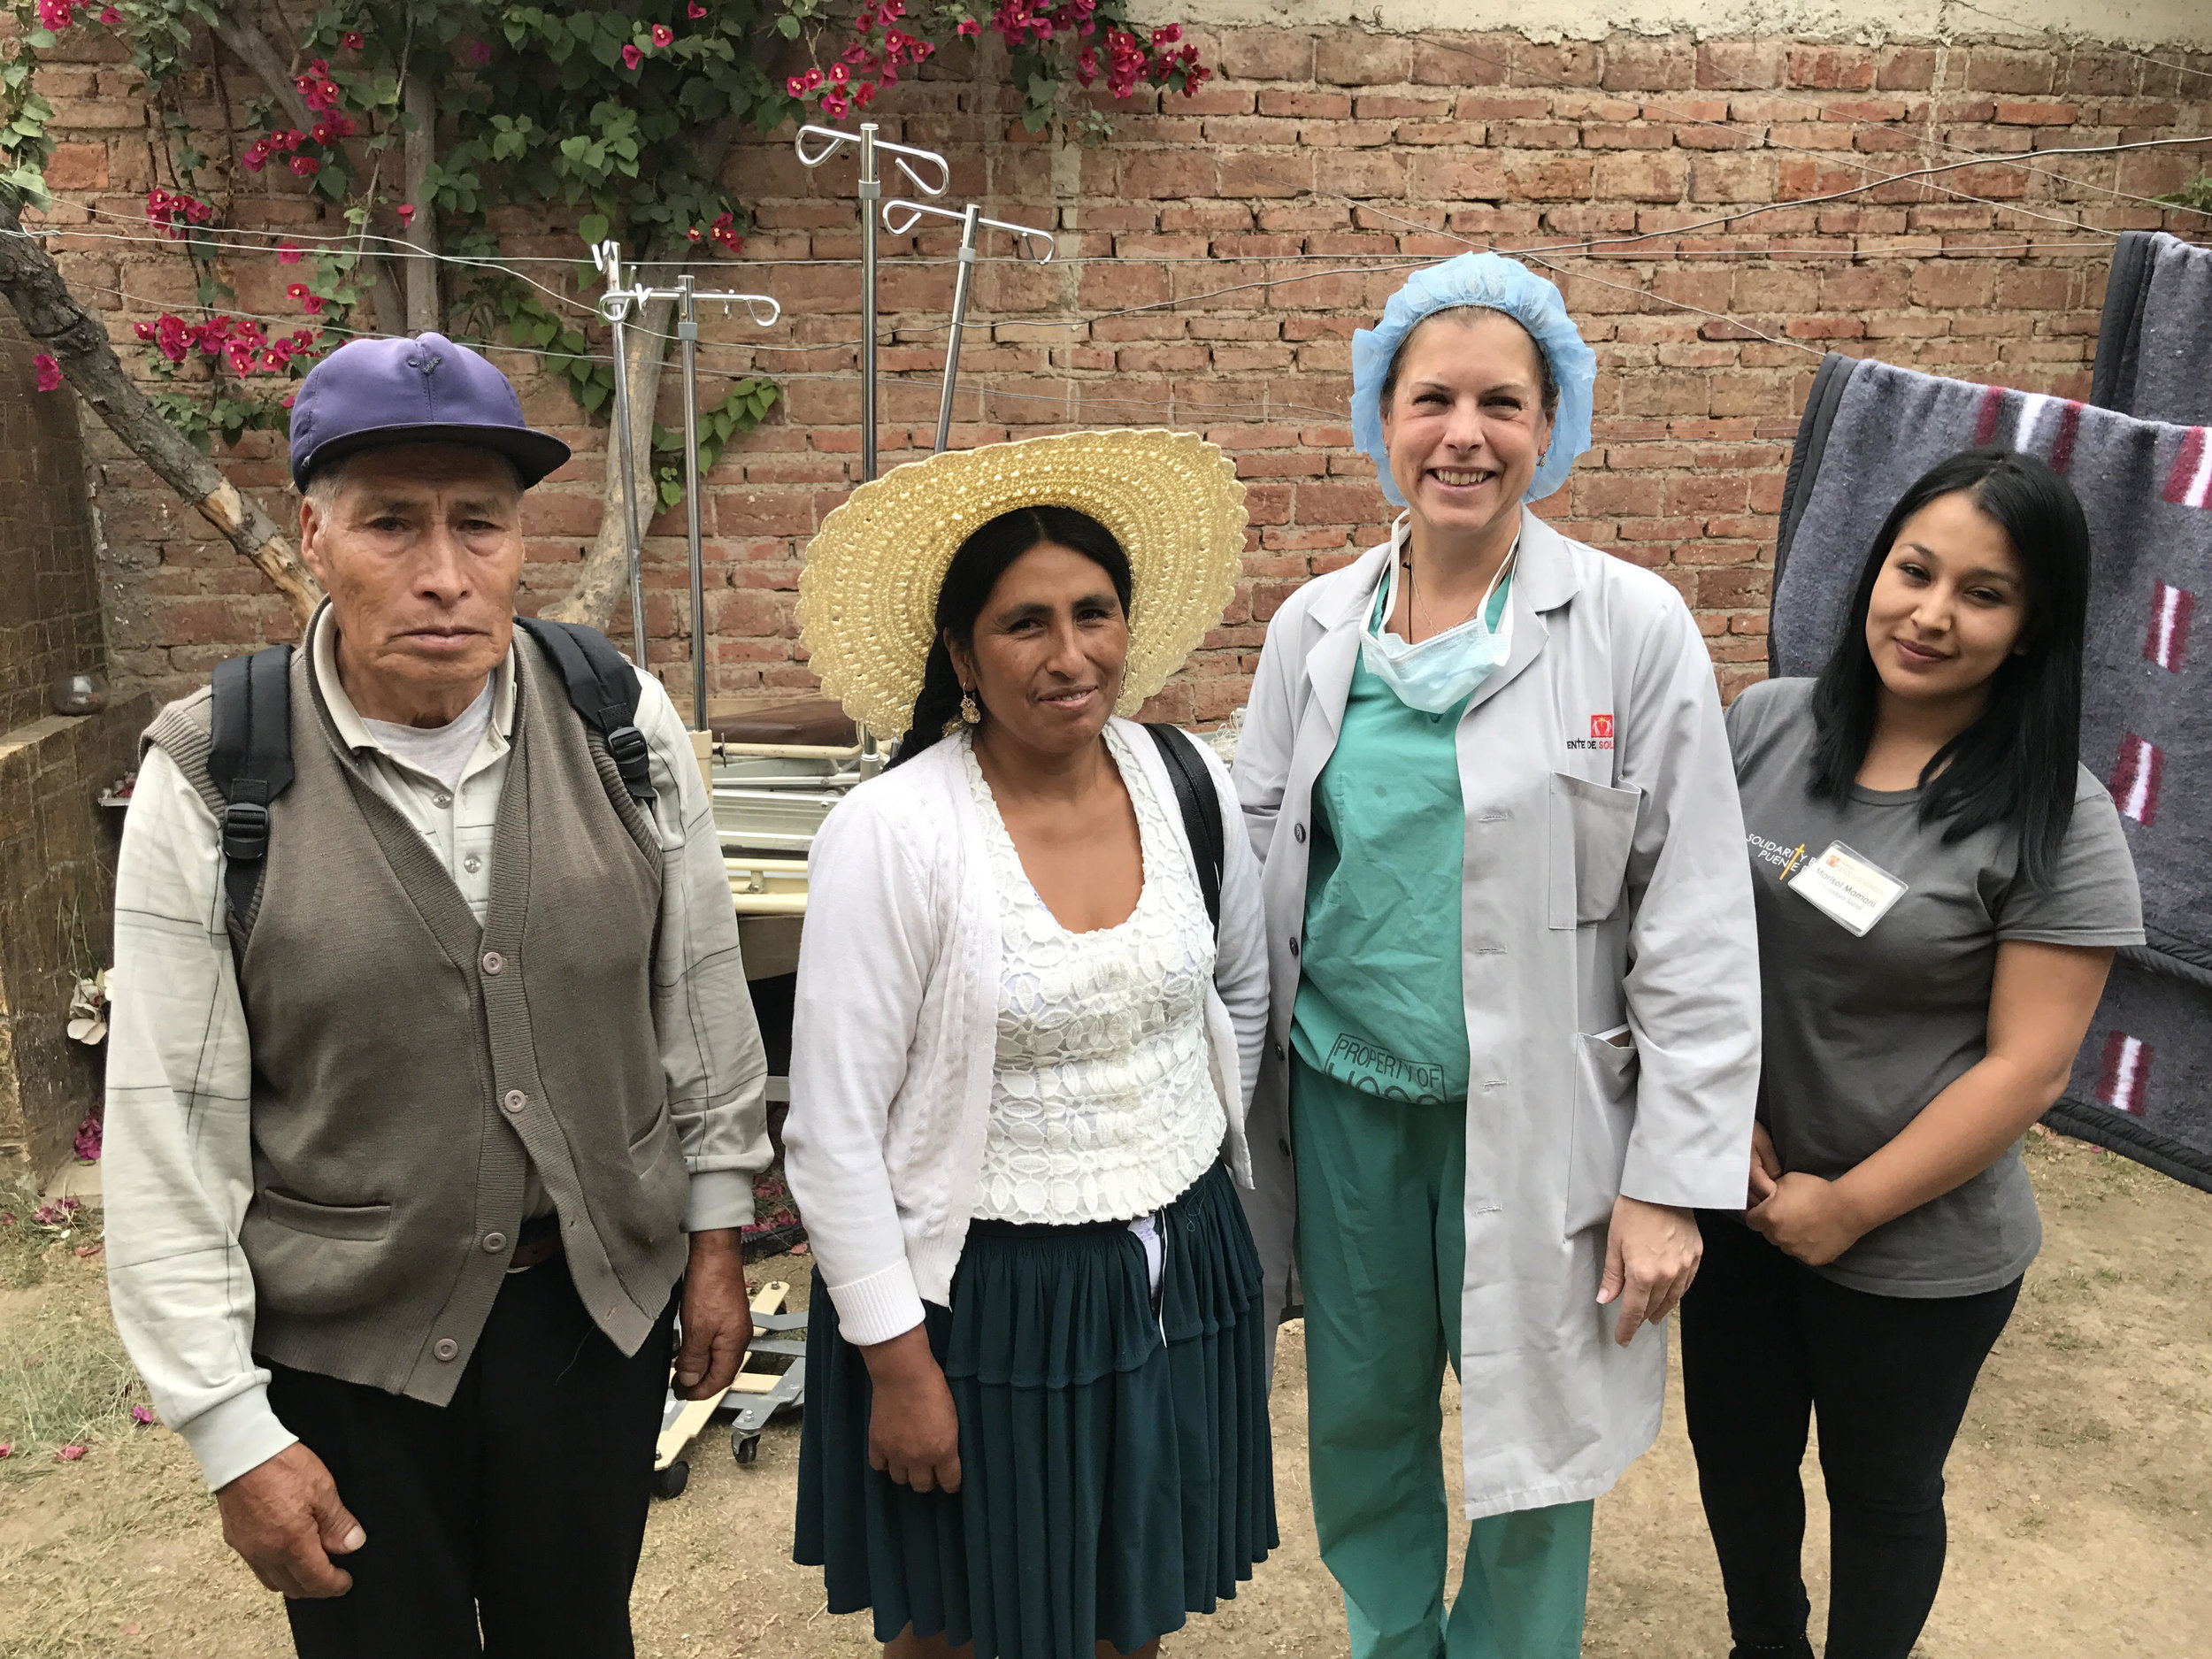 PdS social worker Marizol Mamani (far right) with Dr. Janet Tomezsko and a patient and her family member during the 2017 Gynecologic Surgery mission trip.